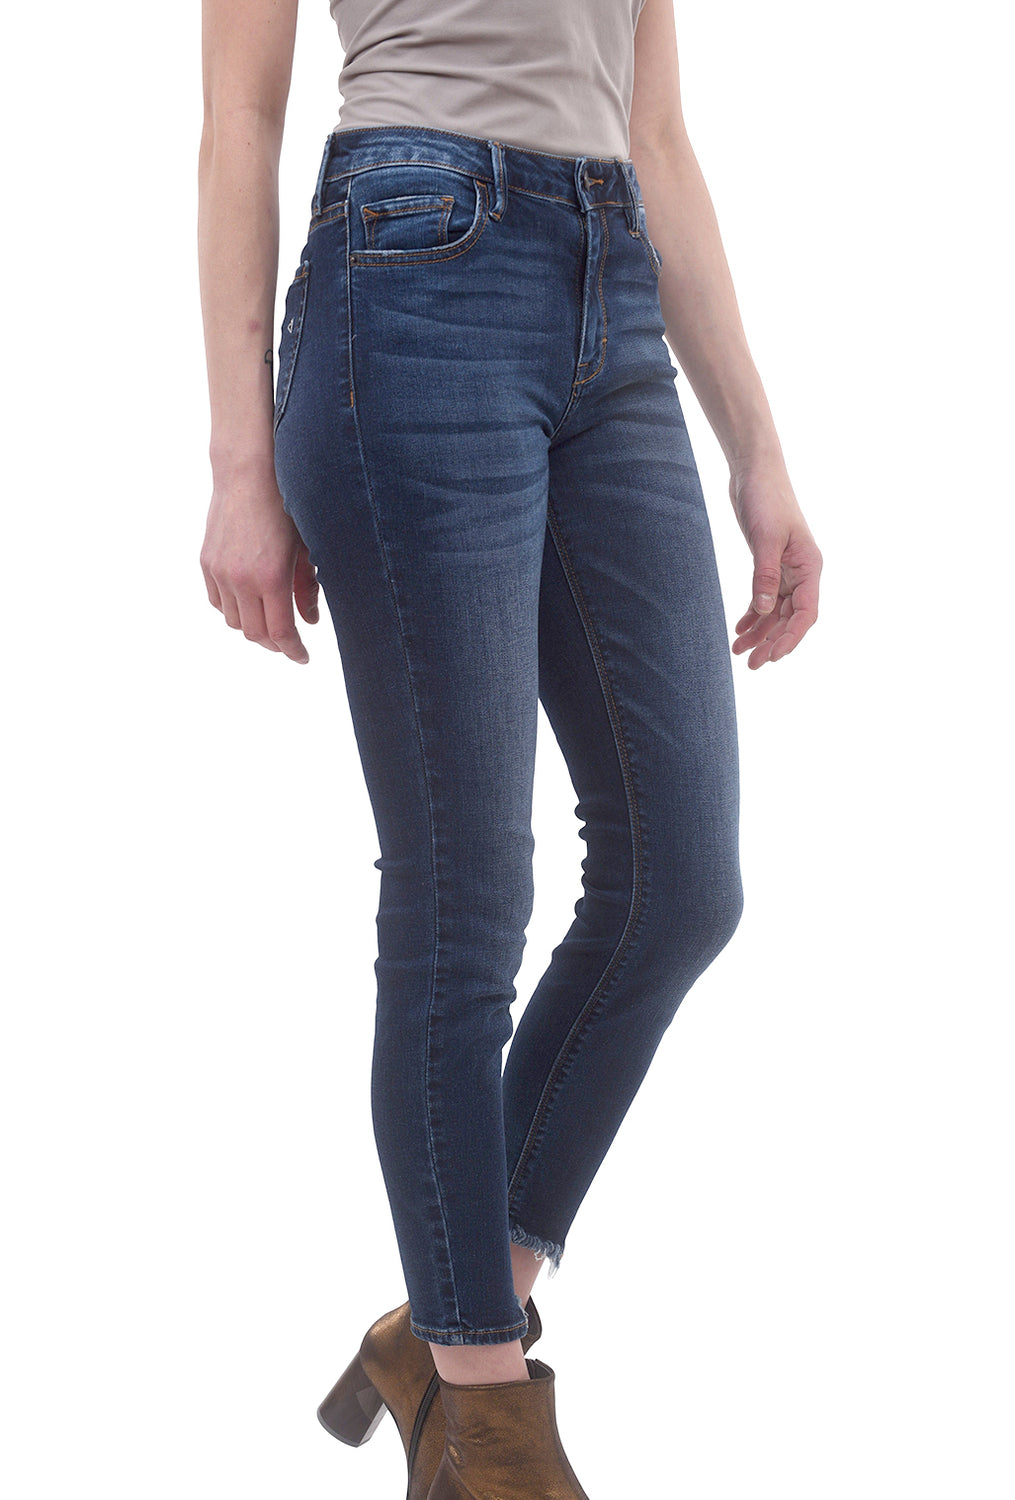 Hidden Denim Grinded Whisker Skinny, Dark Blue